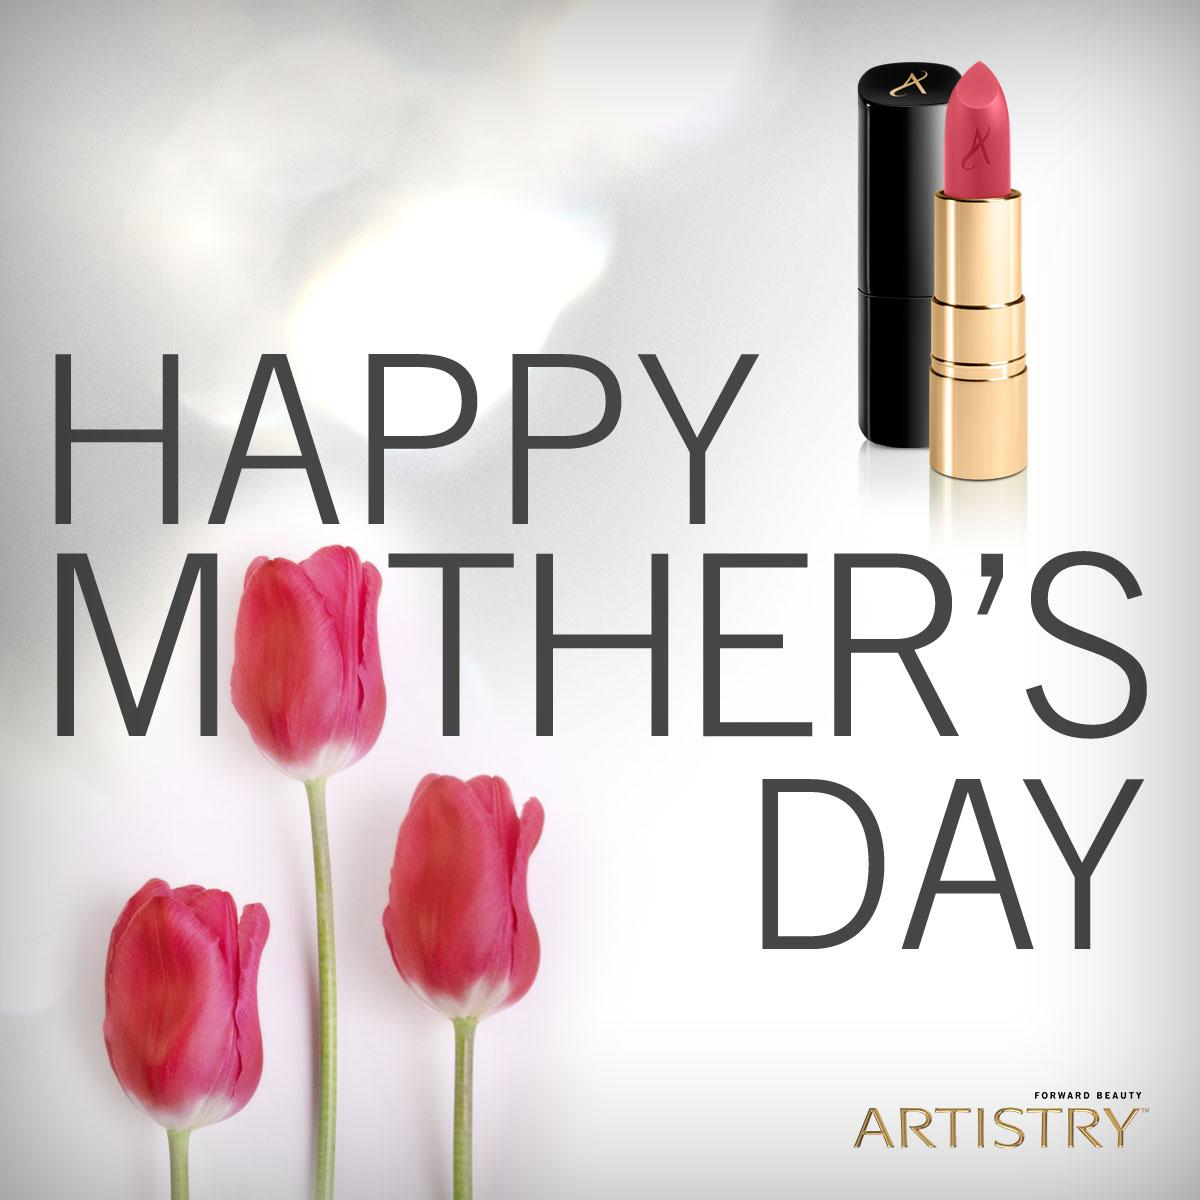 May your day bloom with Tulip Pink joy – Happy #MothersDay! (Retweet+tag a mom you celebrate) http://t.co/l4mtWCqk2s